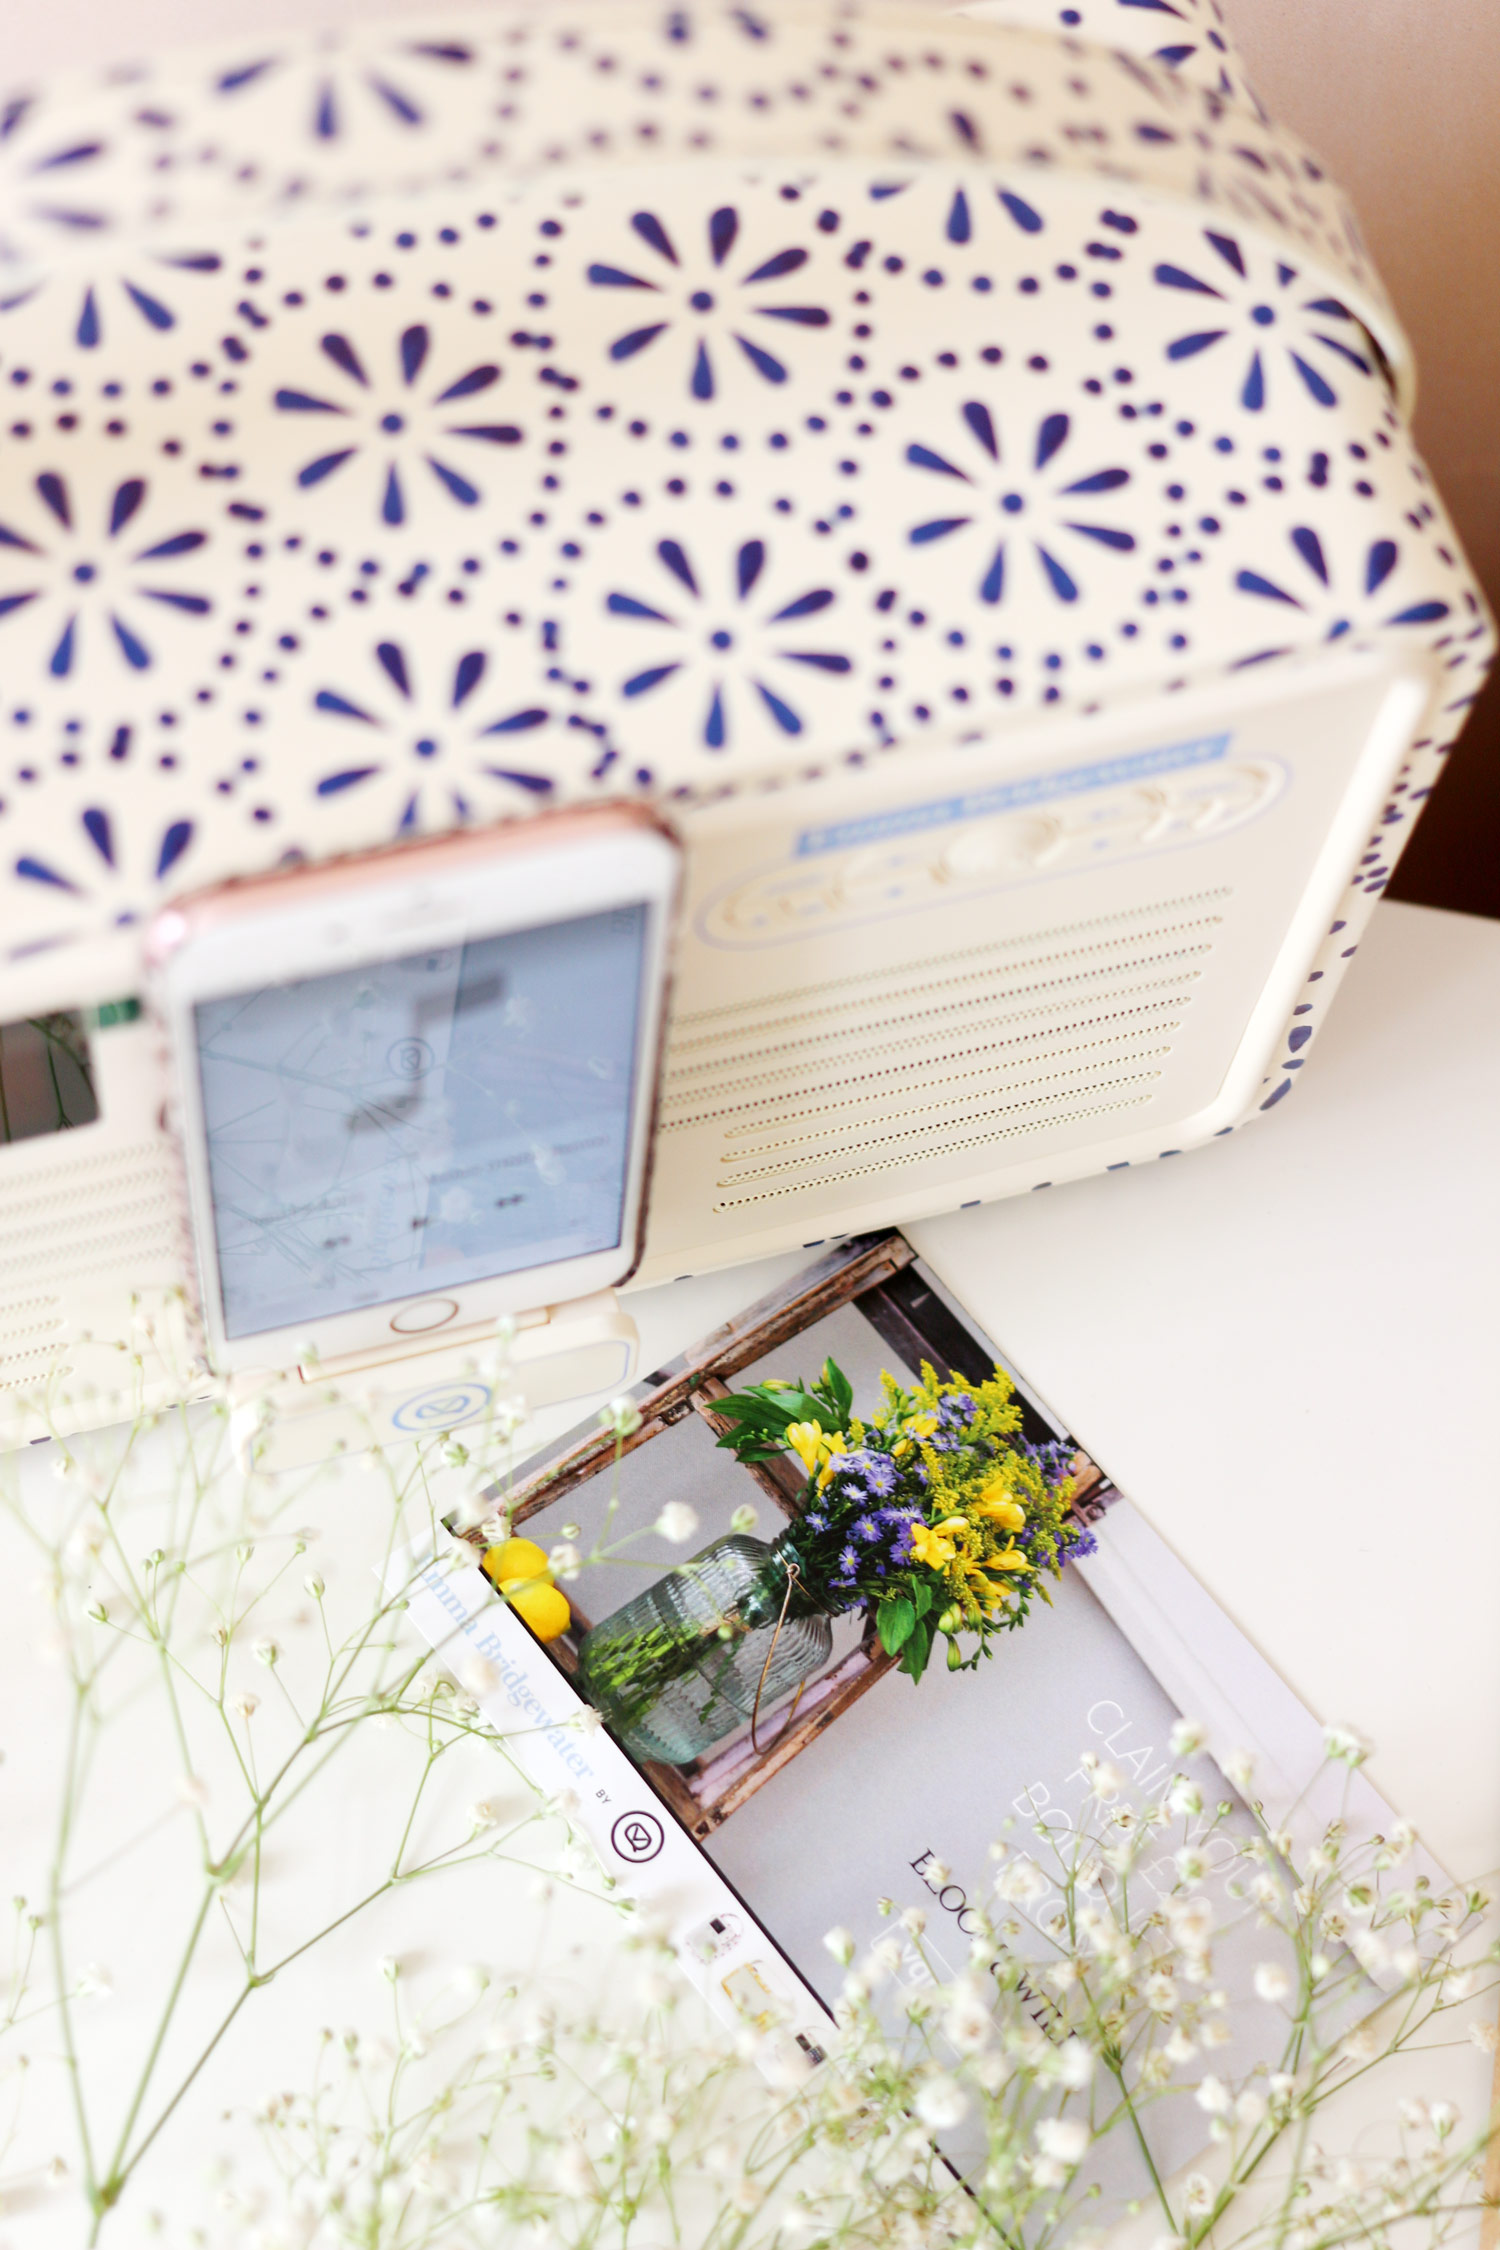 mothers-day-present-bloom-and-wild-emma-bridgewater-digital-radio-offer-2